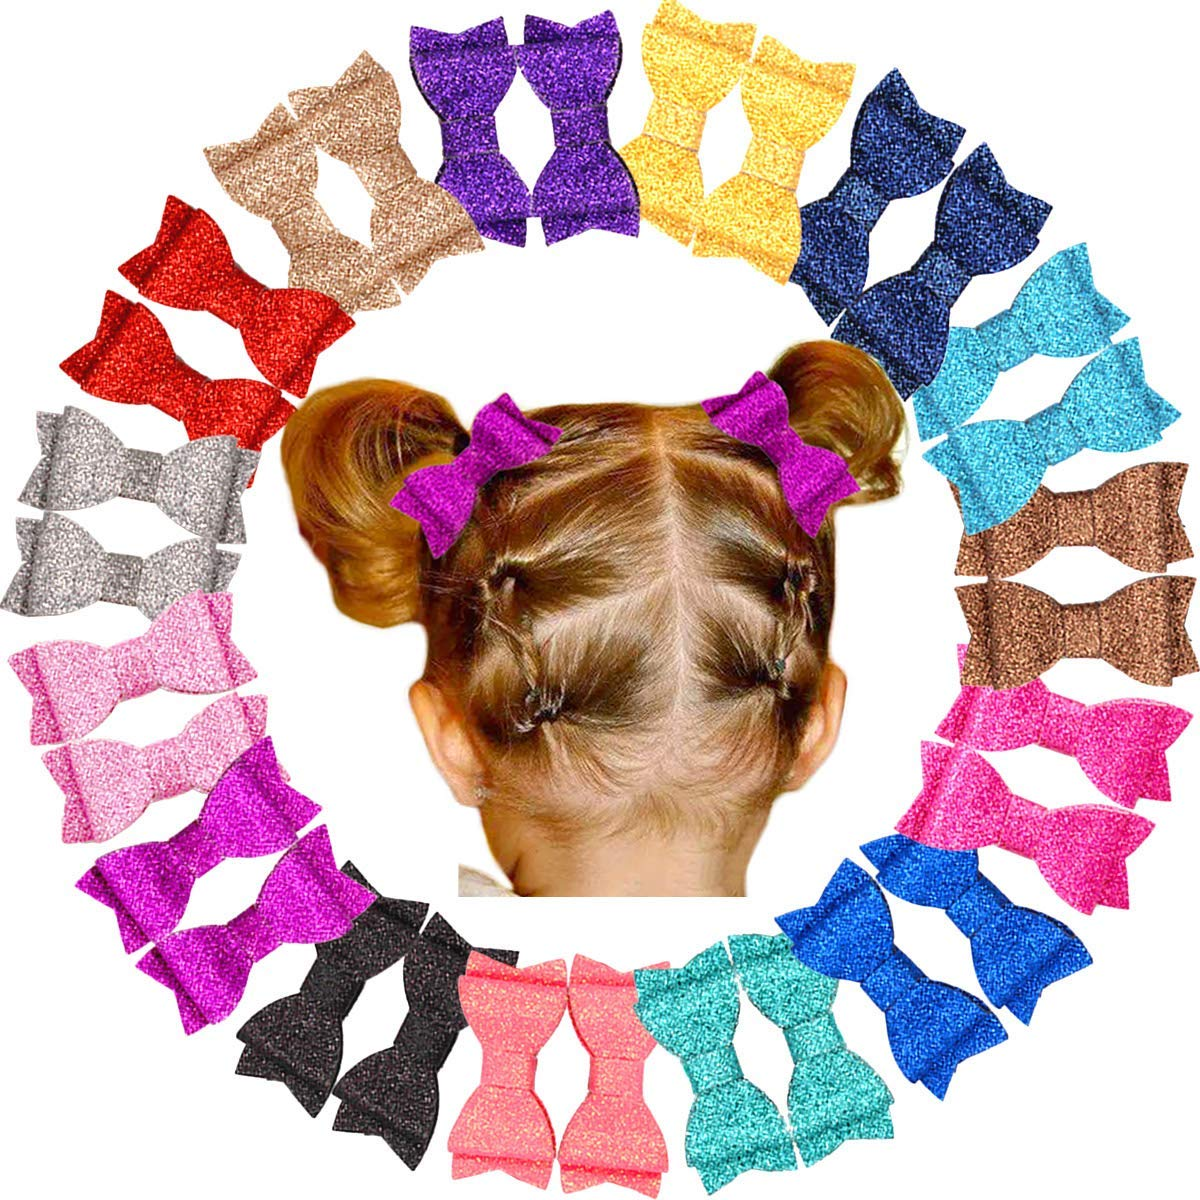 """30Pcs Glitter Sparkle Bows for Girls Pigtail 2.75"""" Hair Bows Fully lined Alligator Clips for Baby Girls Toddlers and Kids (15 Colors in Pairs)"""